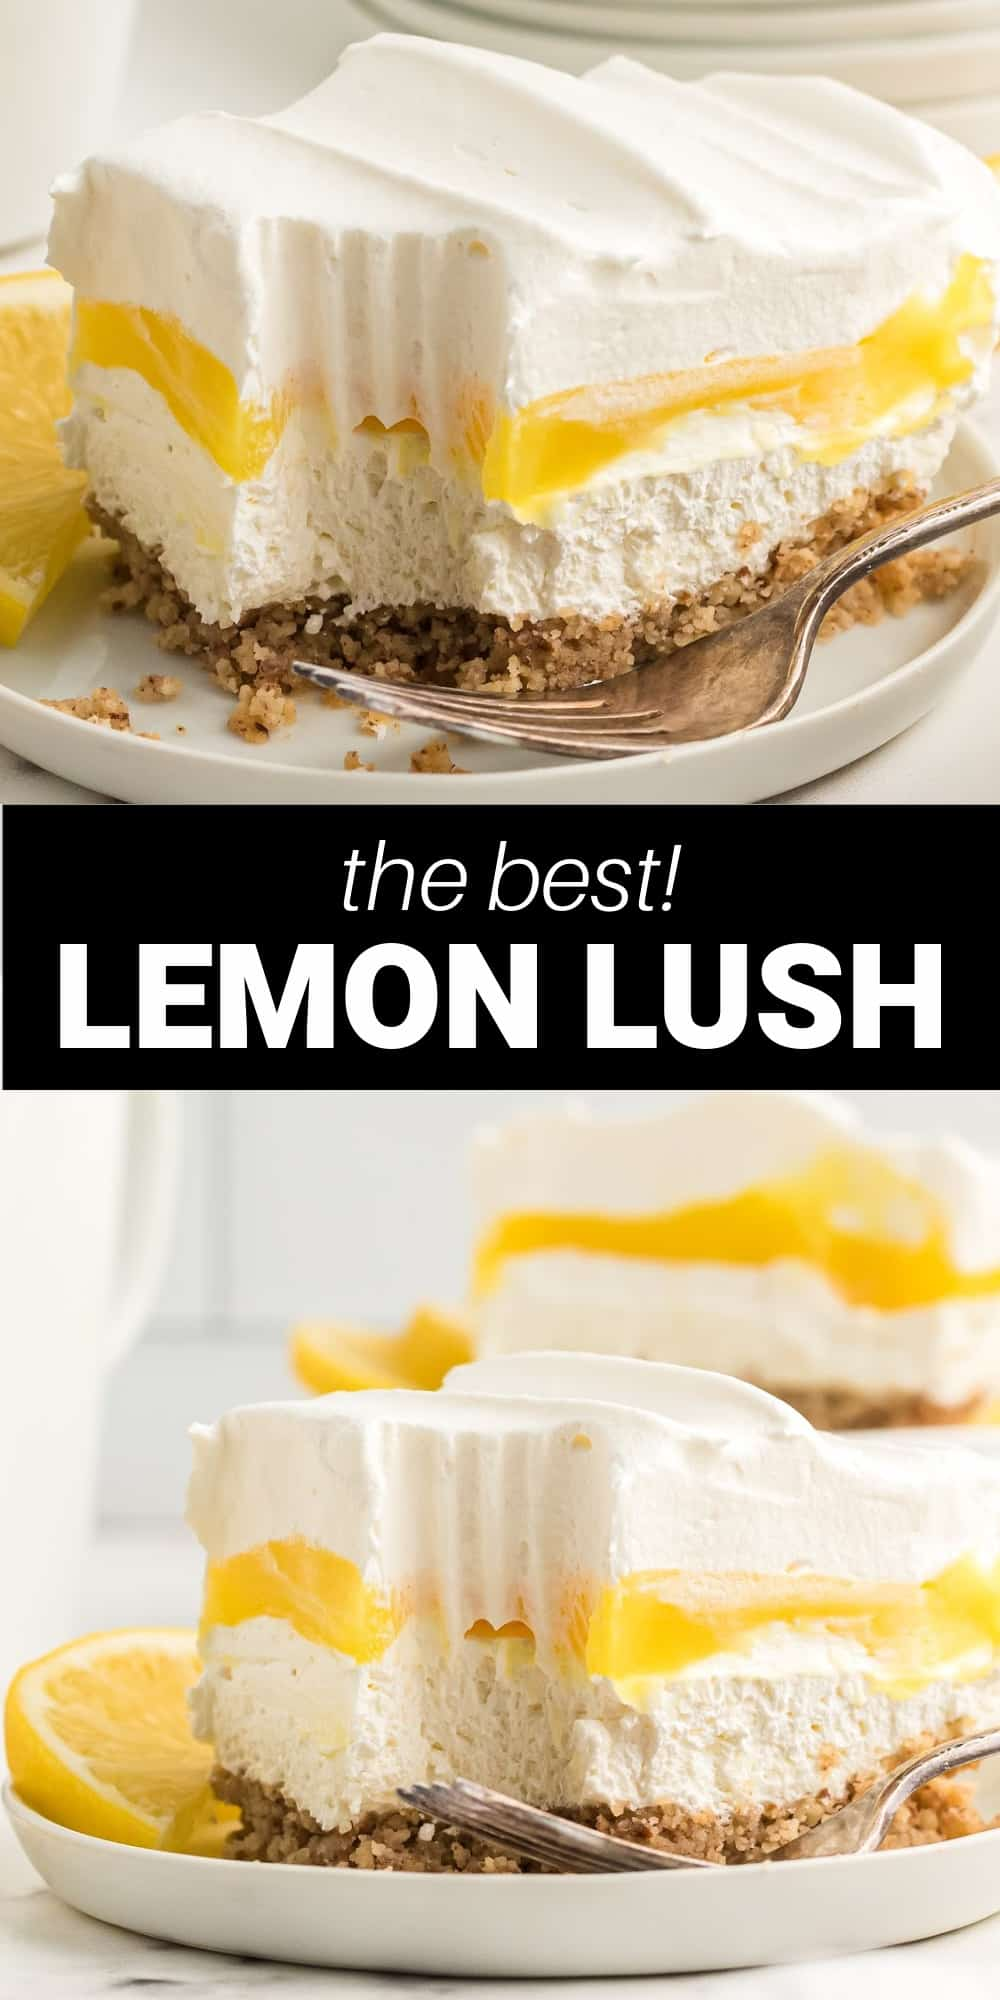 This Lemon Lush dessert is a refreshing and light lemon dessert that's perfect for spring and summer. It's an easy layered dessert with creamy layers of cheesecake using cream cheese, lemon pudding, and whipped cream on an amazing pecan crust!